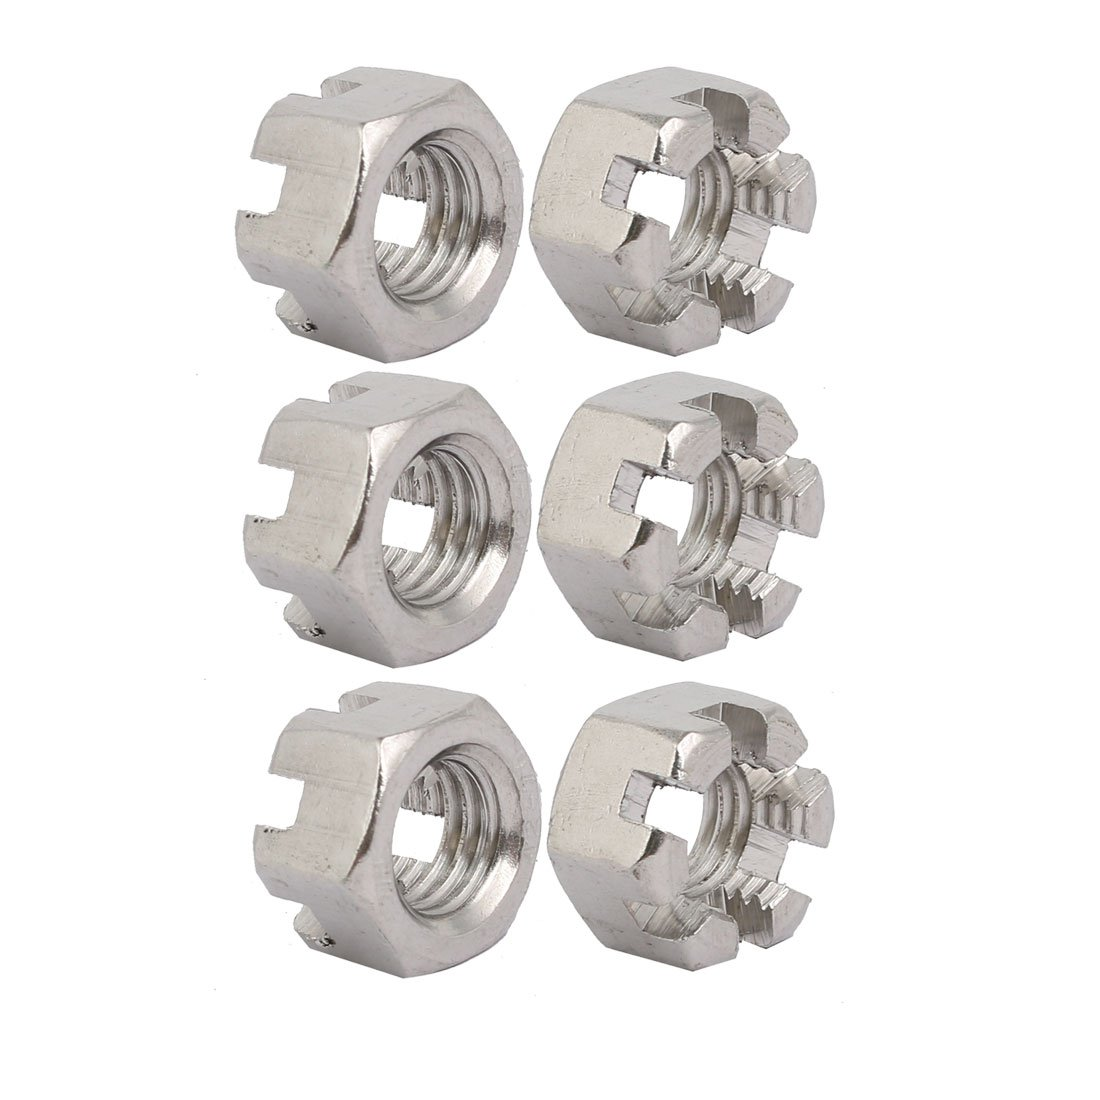 sourcingmap® 6pcs M12x1.75mm 304 Stainless Steel Hexagon Slotted Castle Nut Silver Tone a17101700ux0244